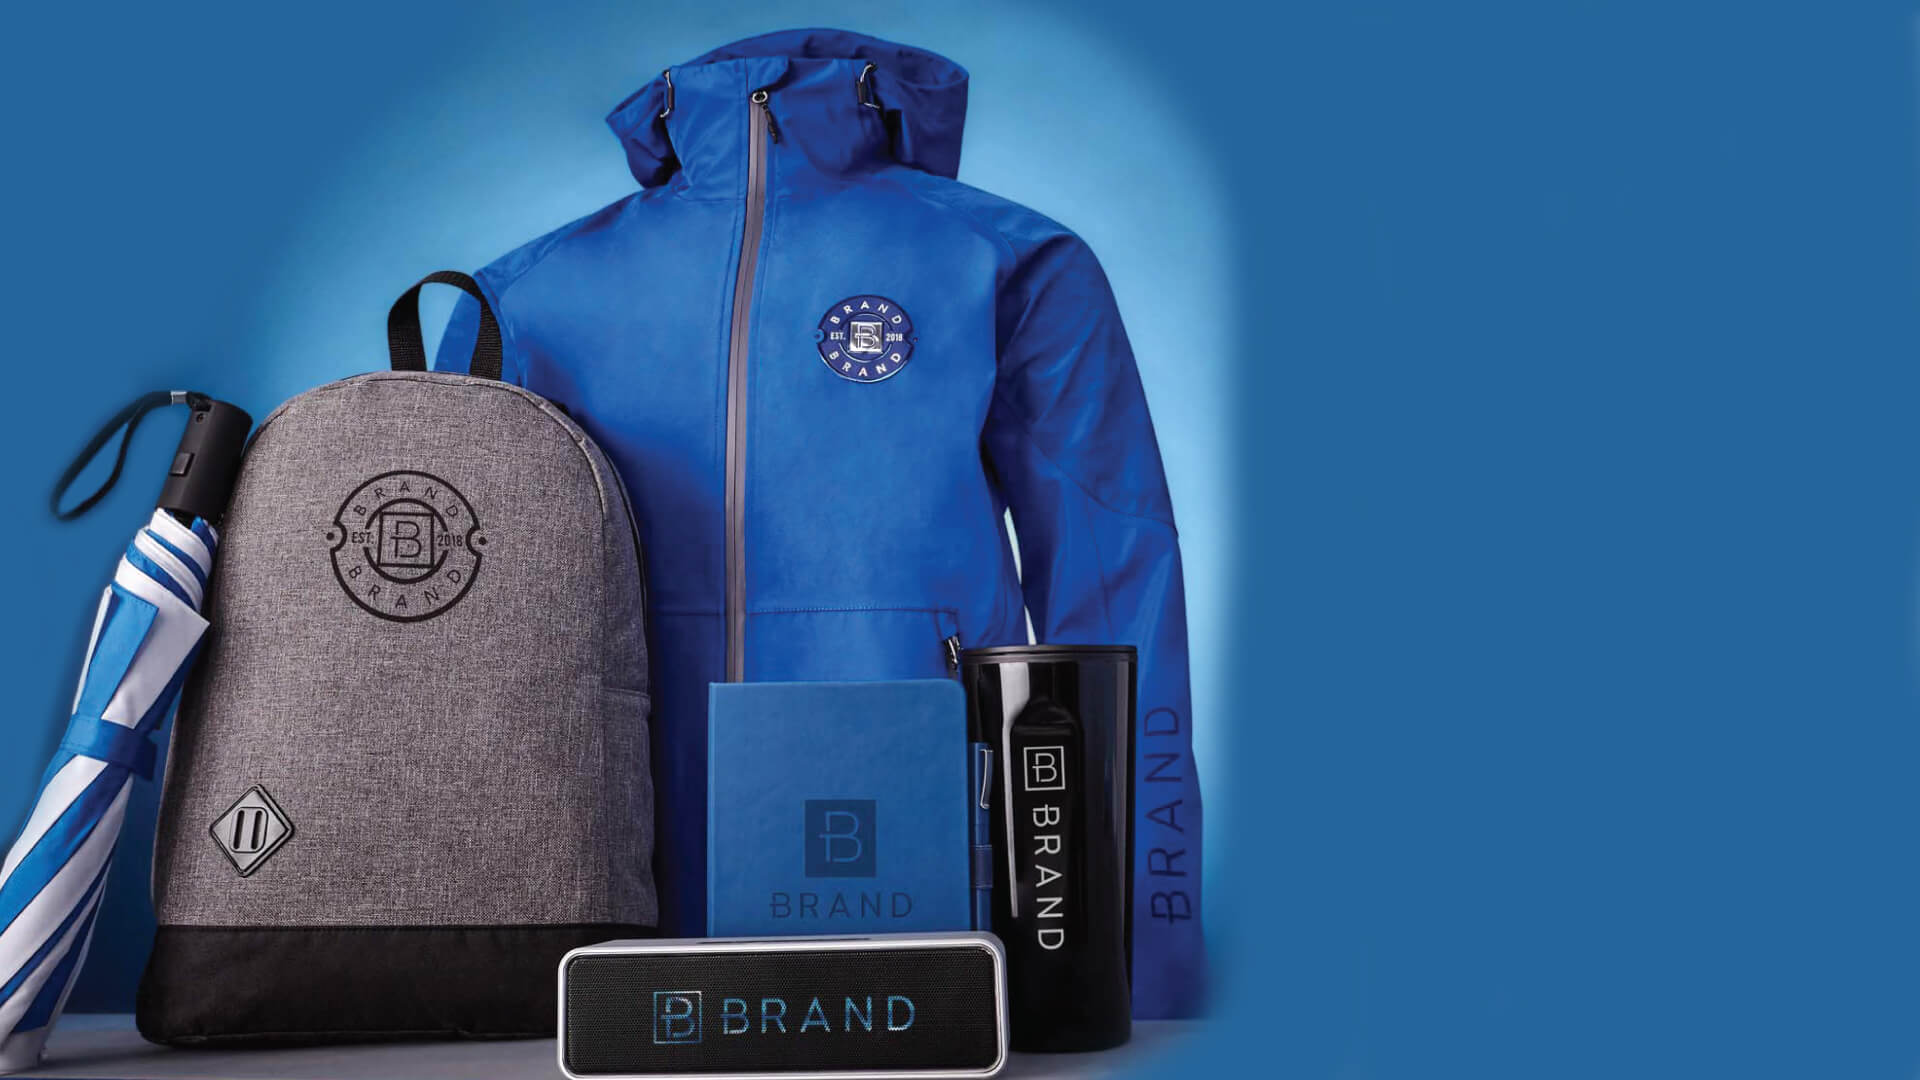 B brand gear with umbrella, jacket, notebook, cup, and speaker